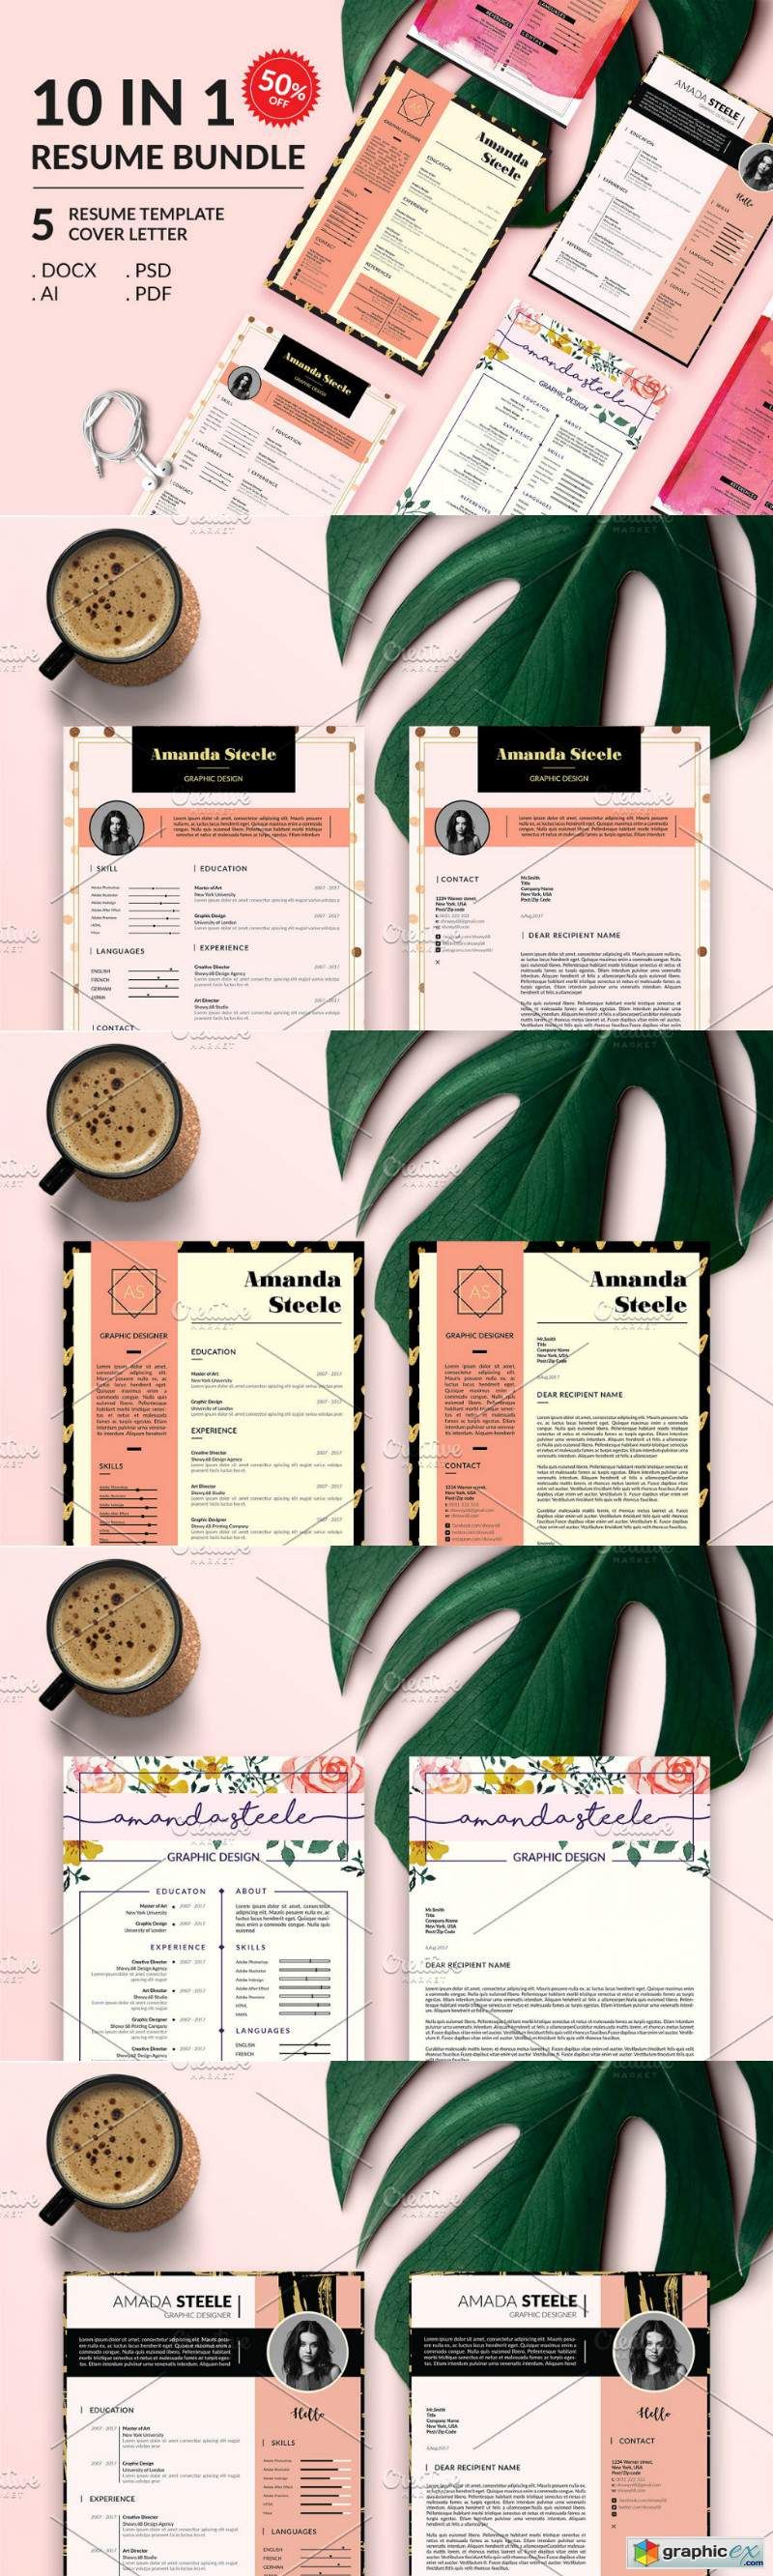 Gold Rose Resume BUNDLE Template N